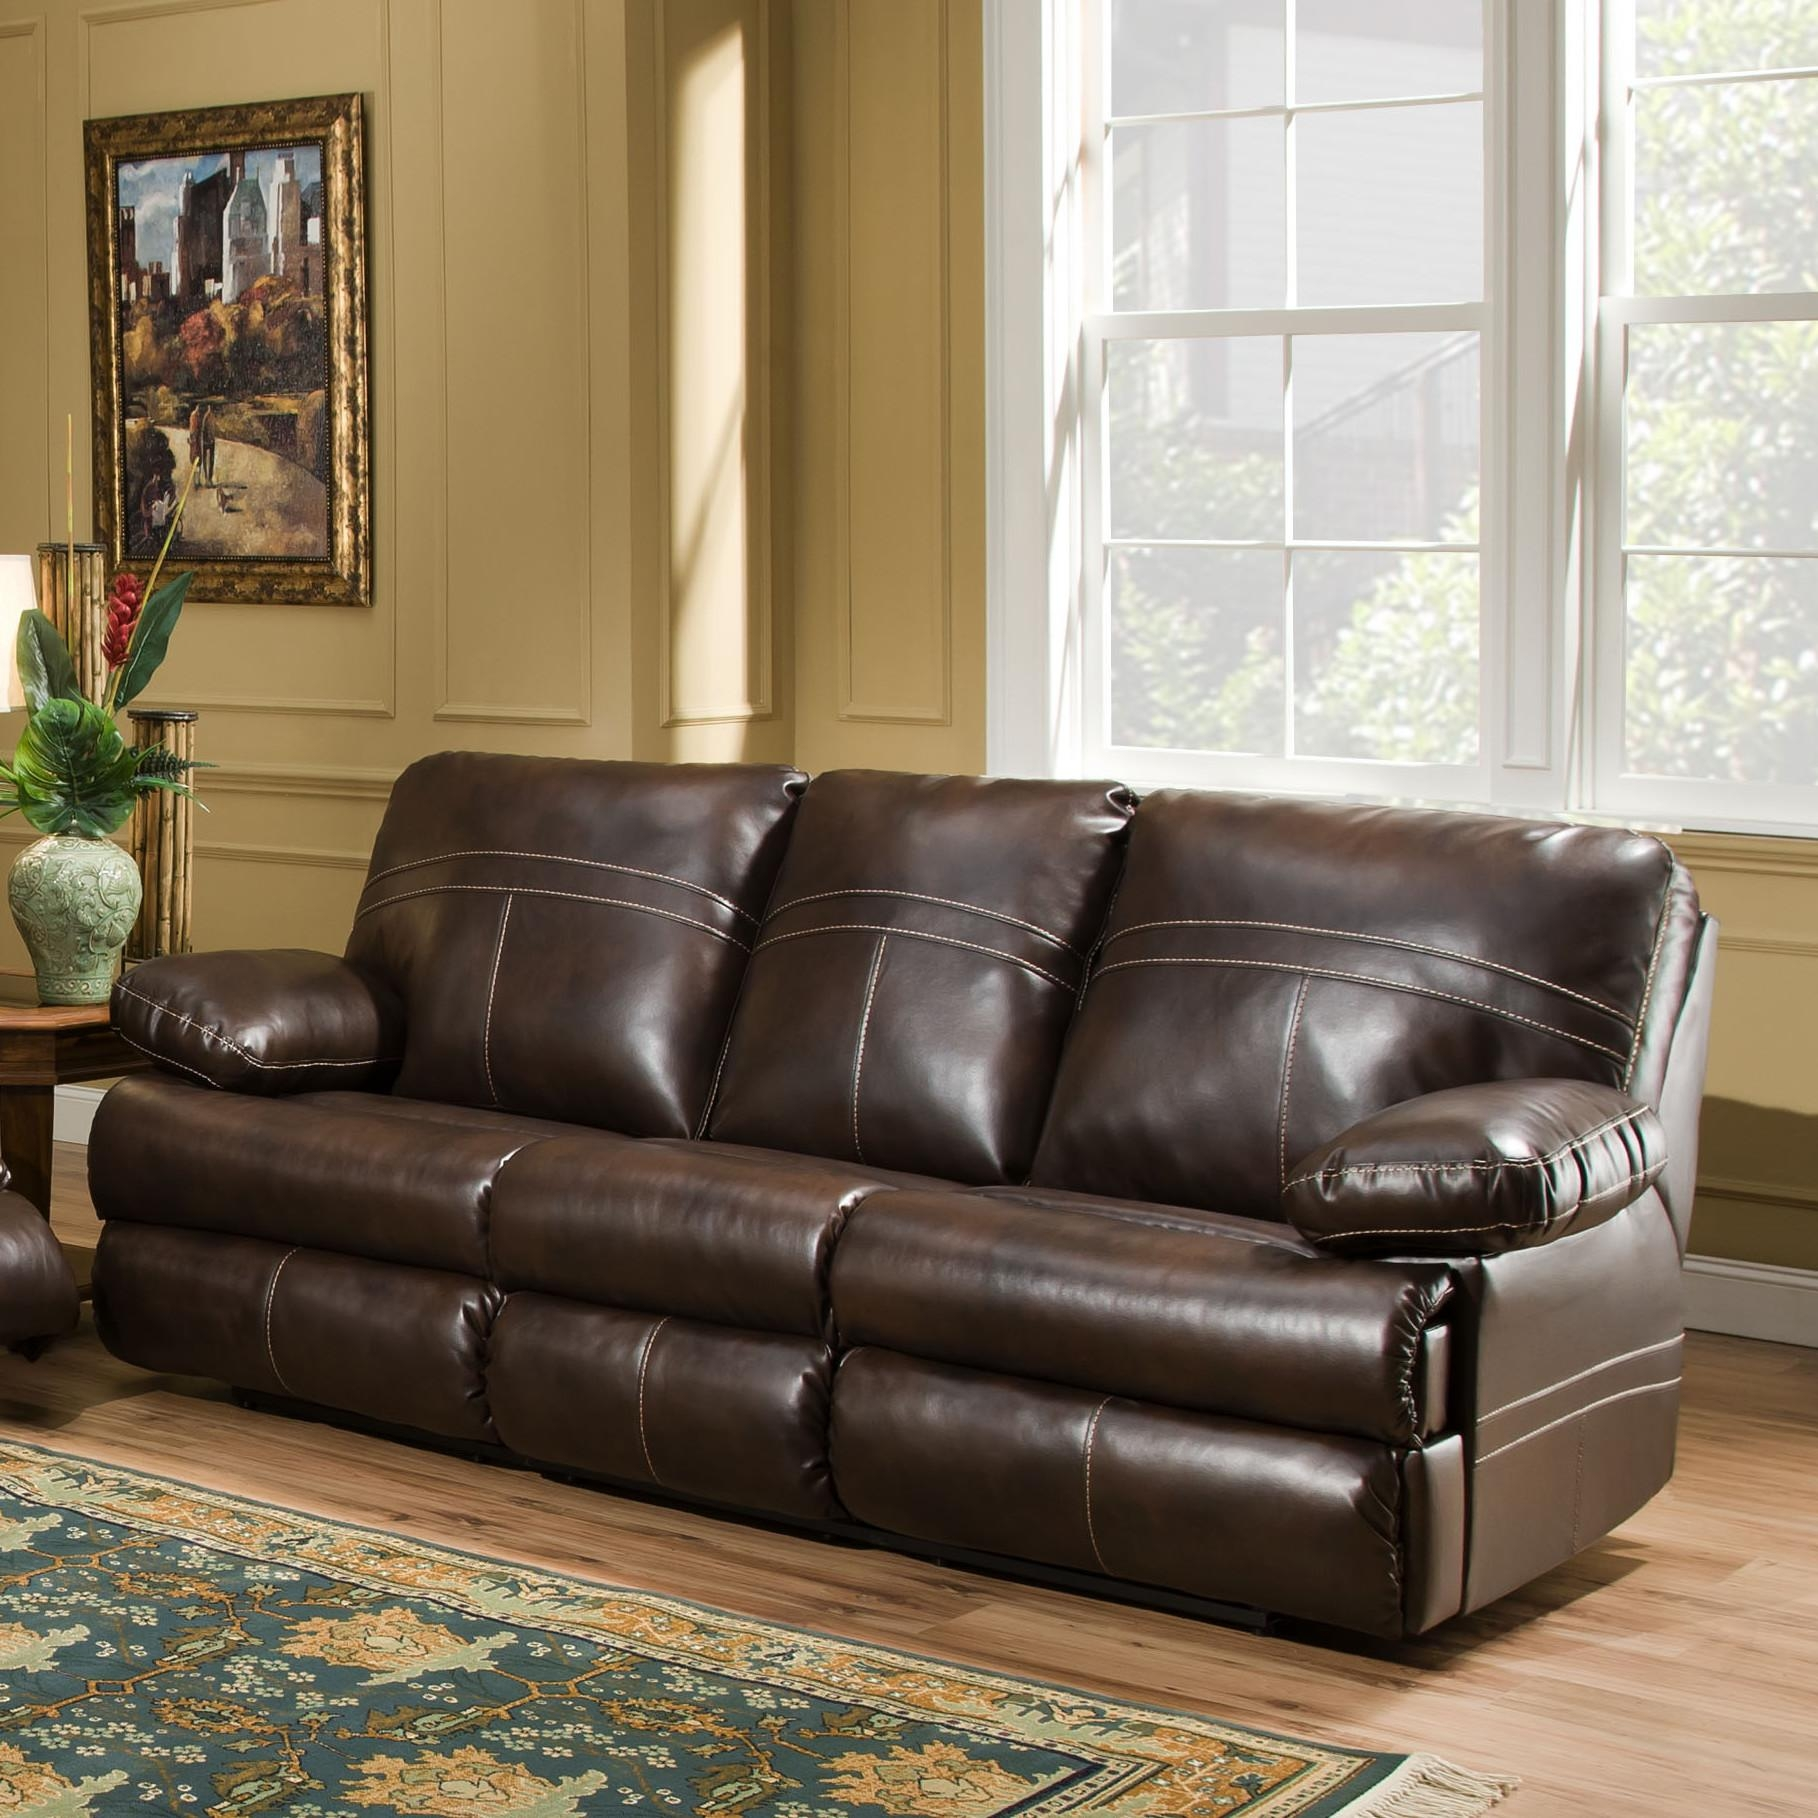 Simmons Leather Sofa And Loveseat Simmons Leather Sofa And Loveseat Radiovannes Com Thesofa